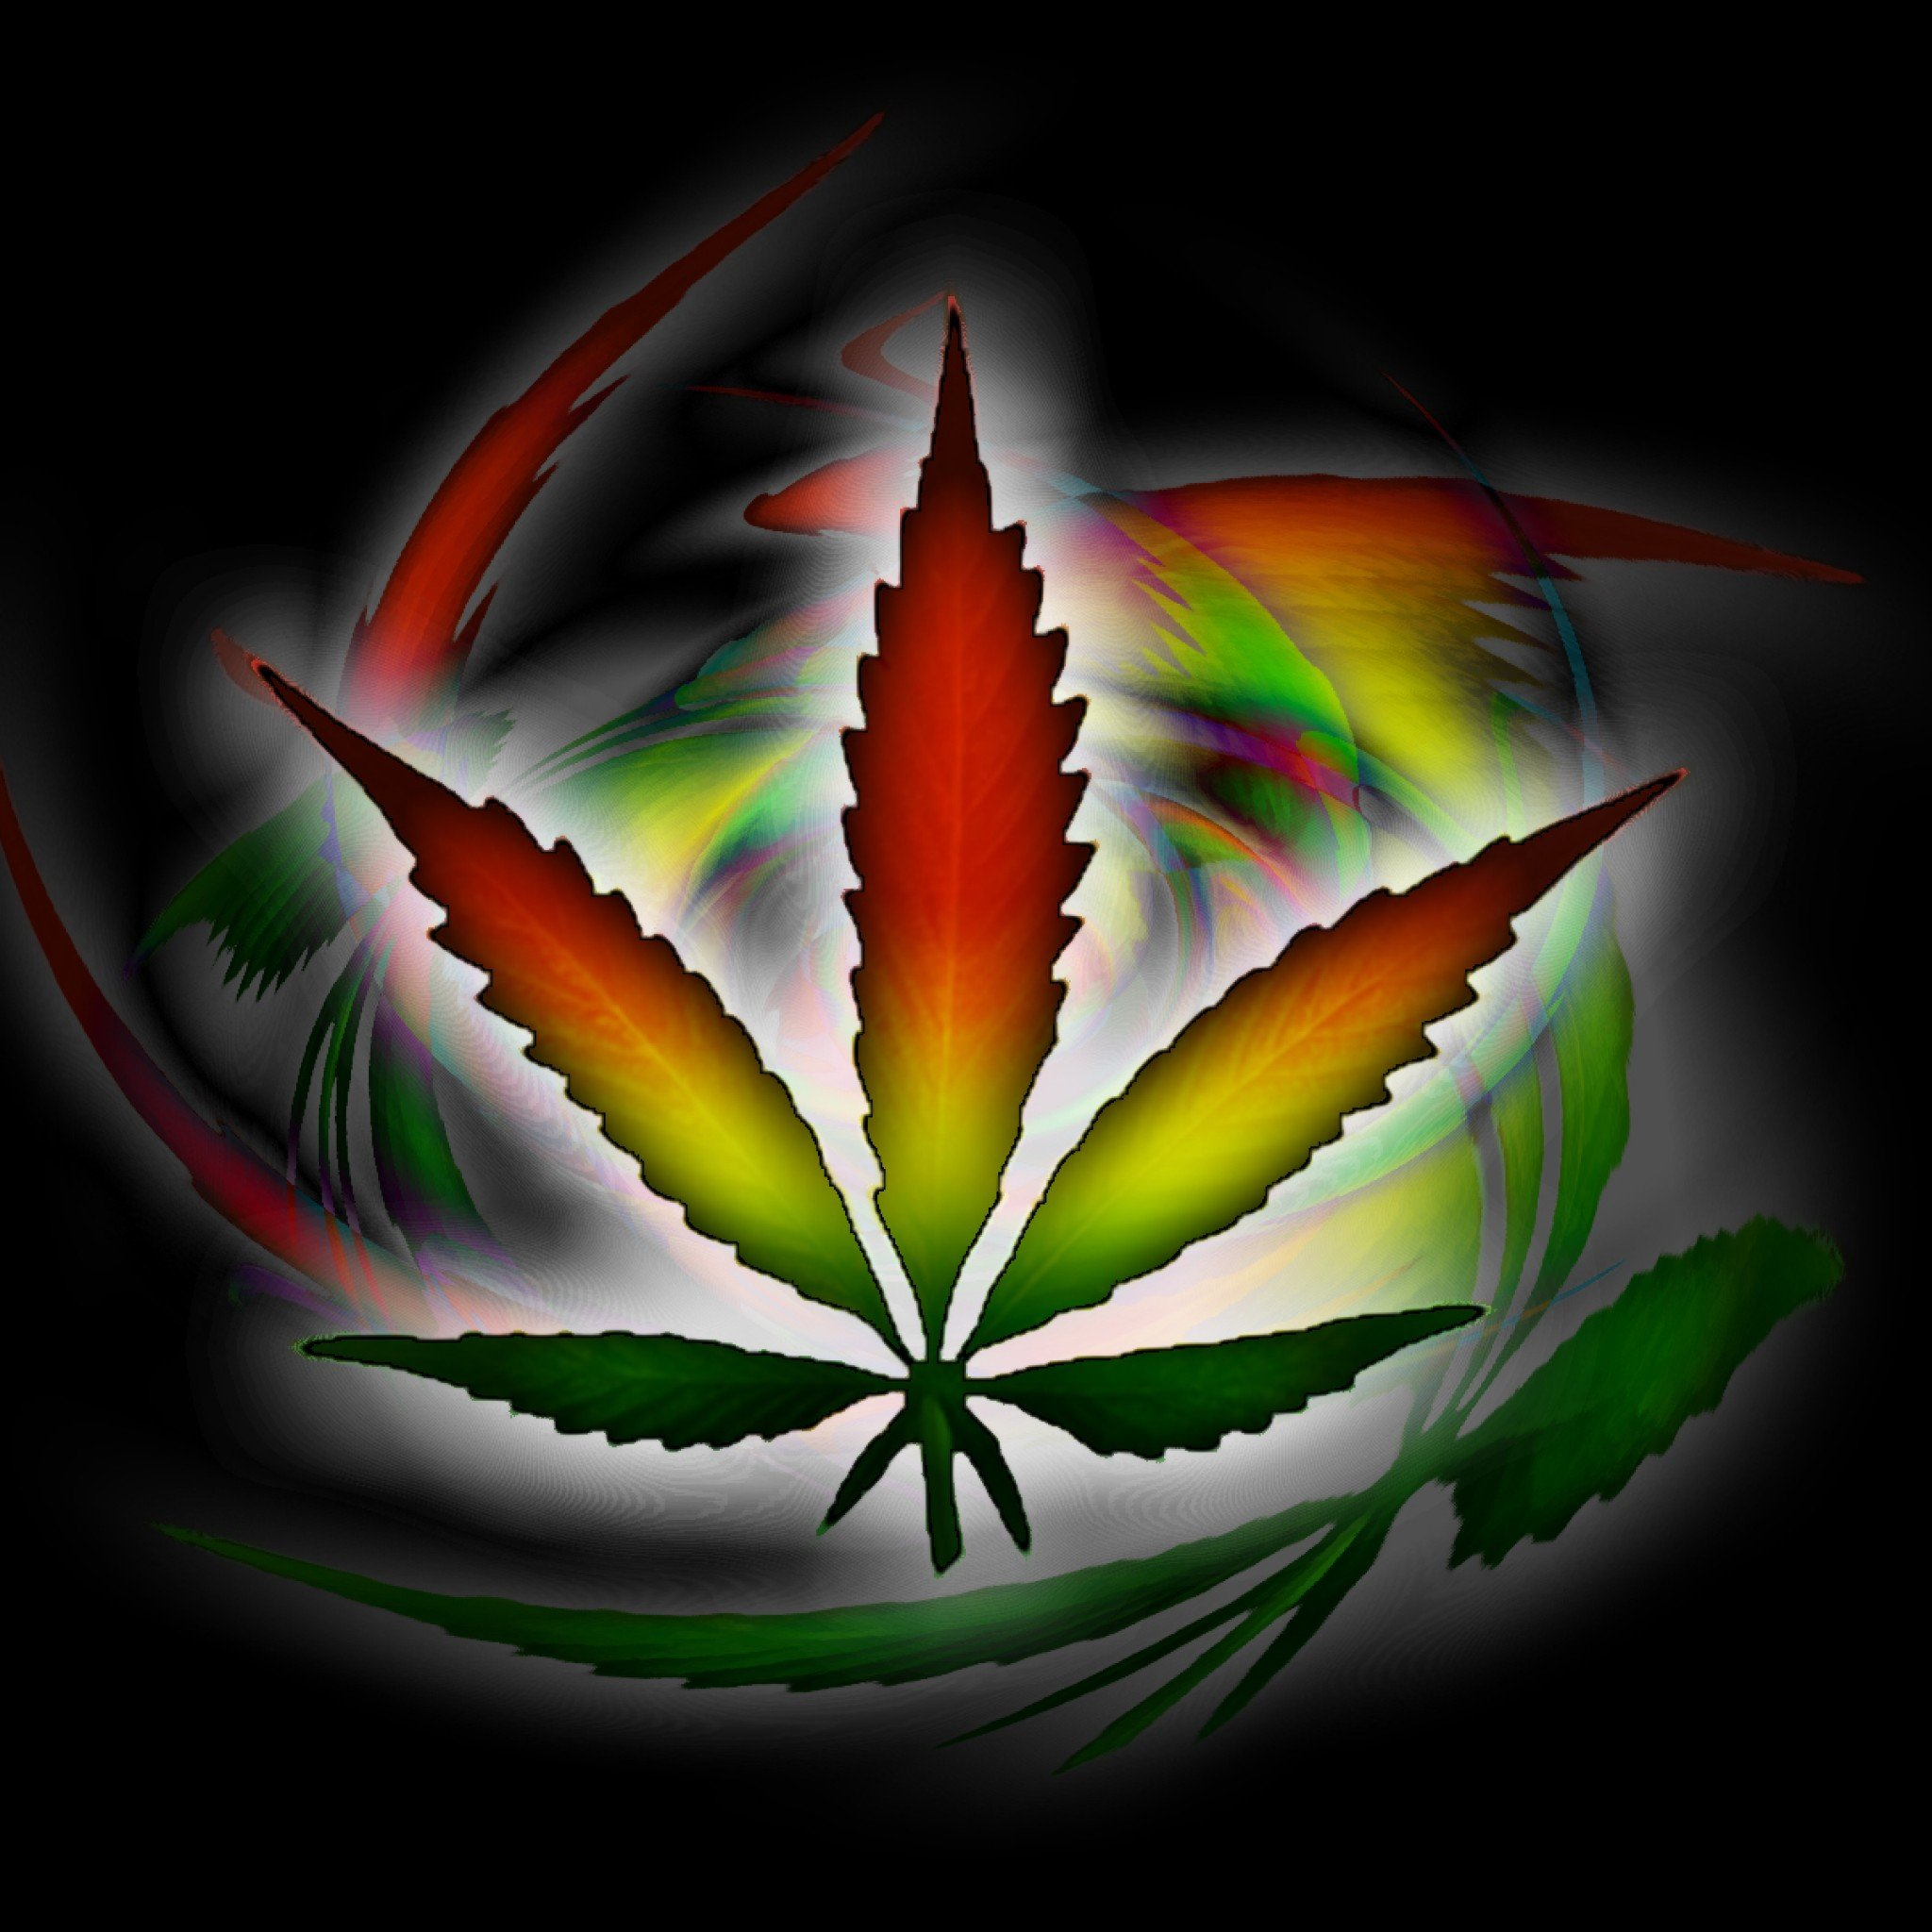 Multi Coloured HD Weed Wallpaper   2048x2048 HD Weed Wallpapers 2048x2048